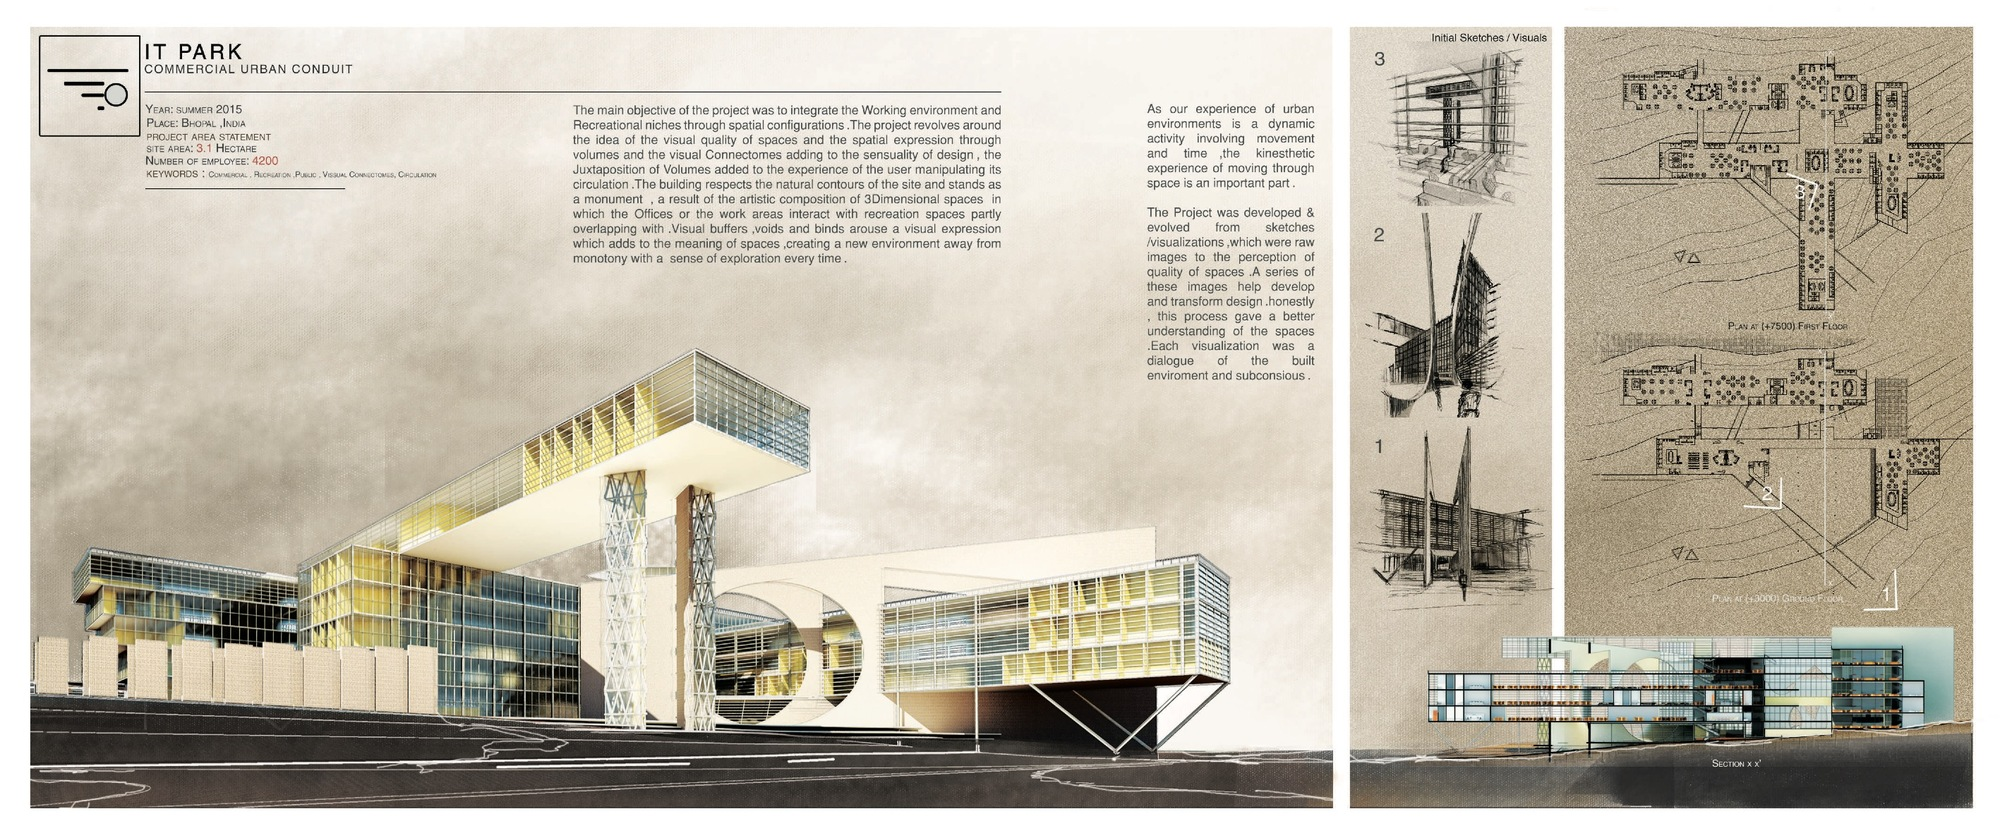 The Best Architecture Portfolio Designs | ArchDaily